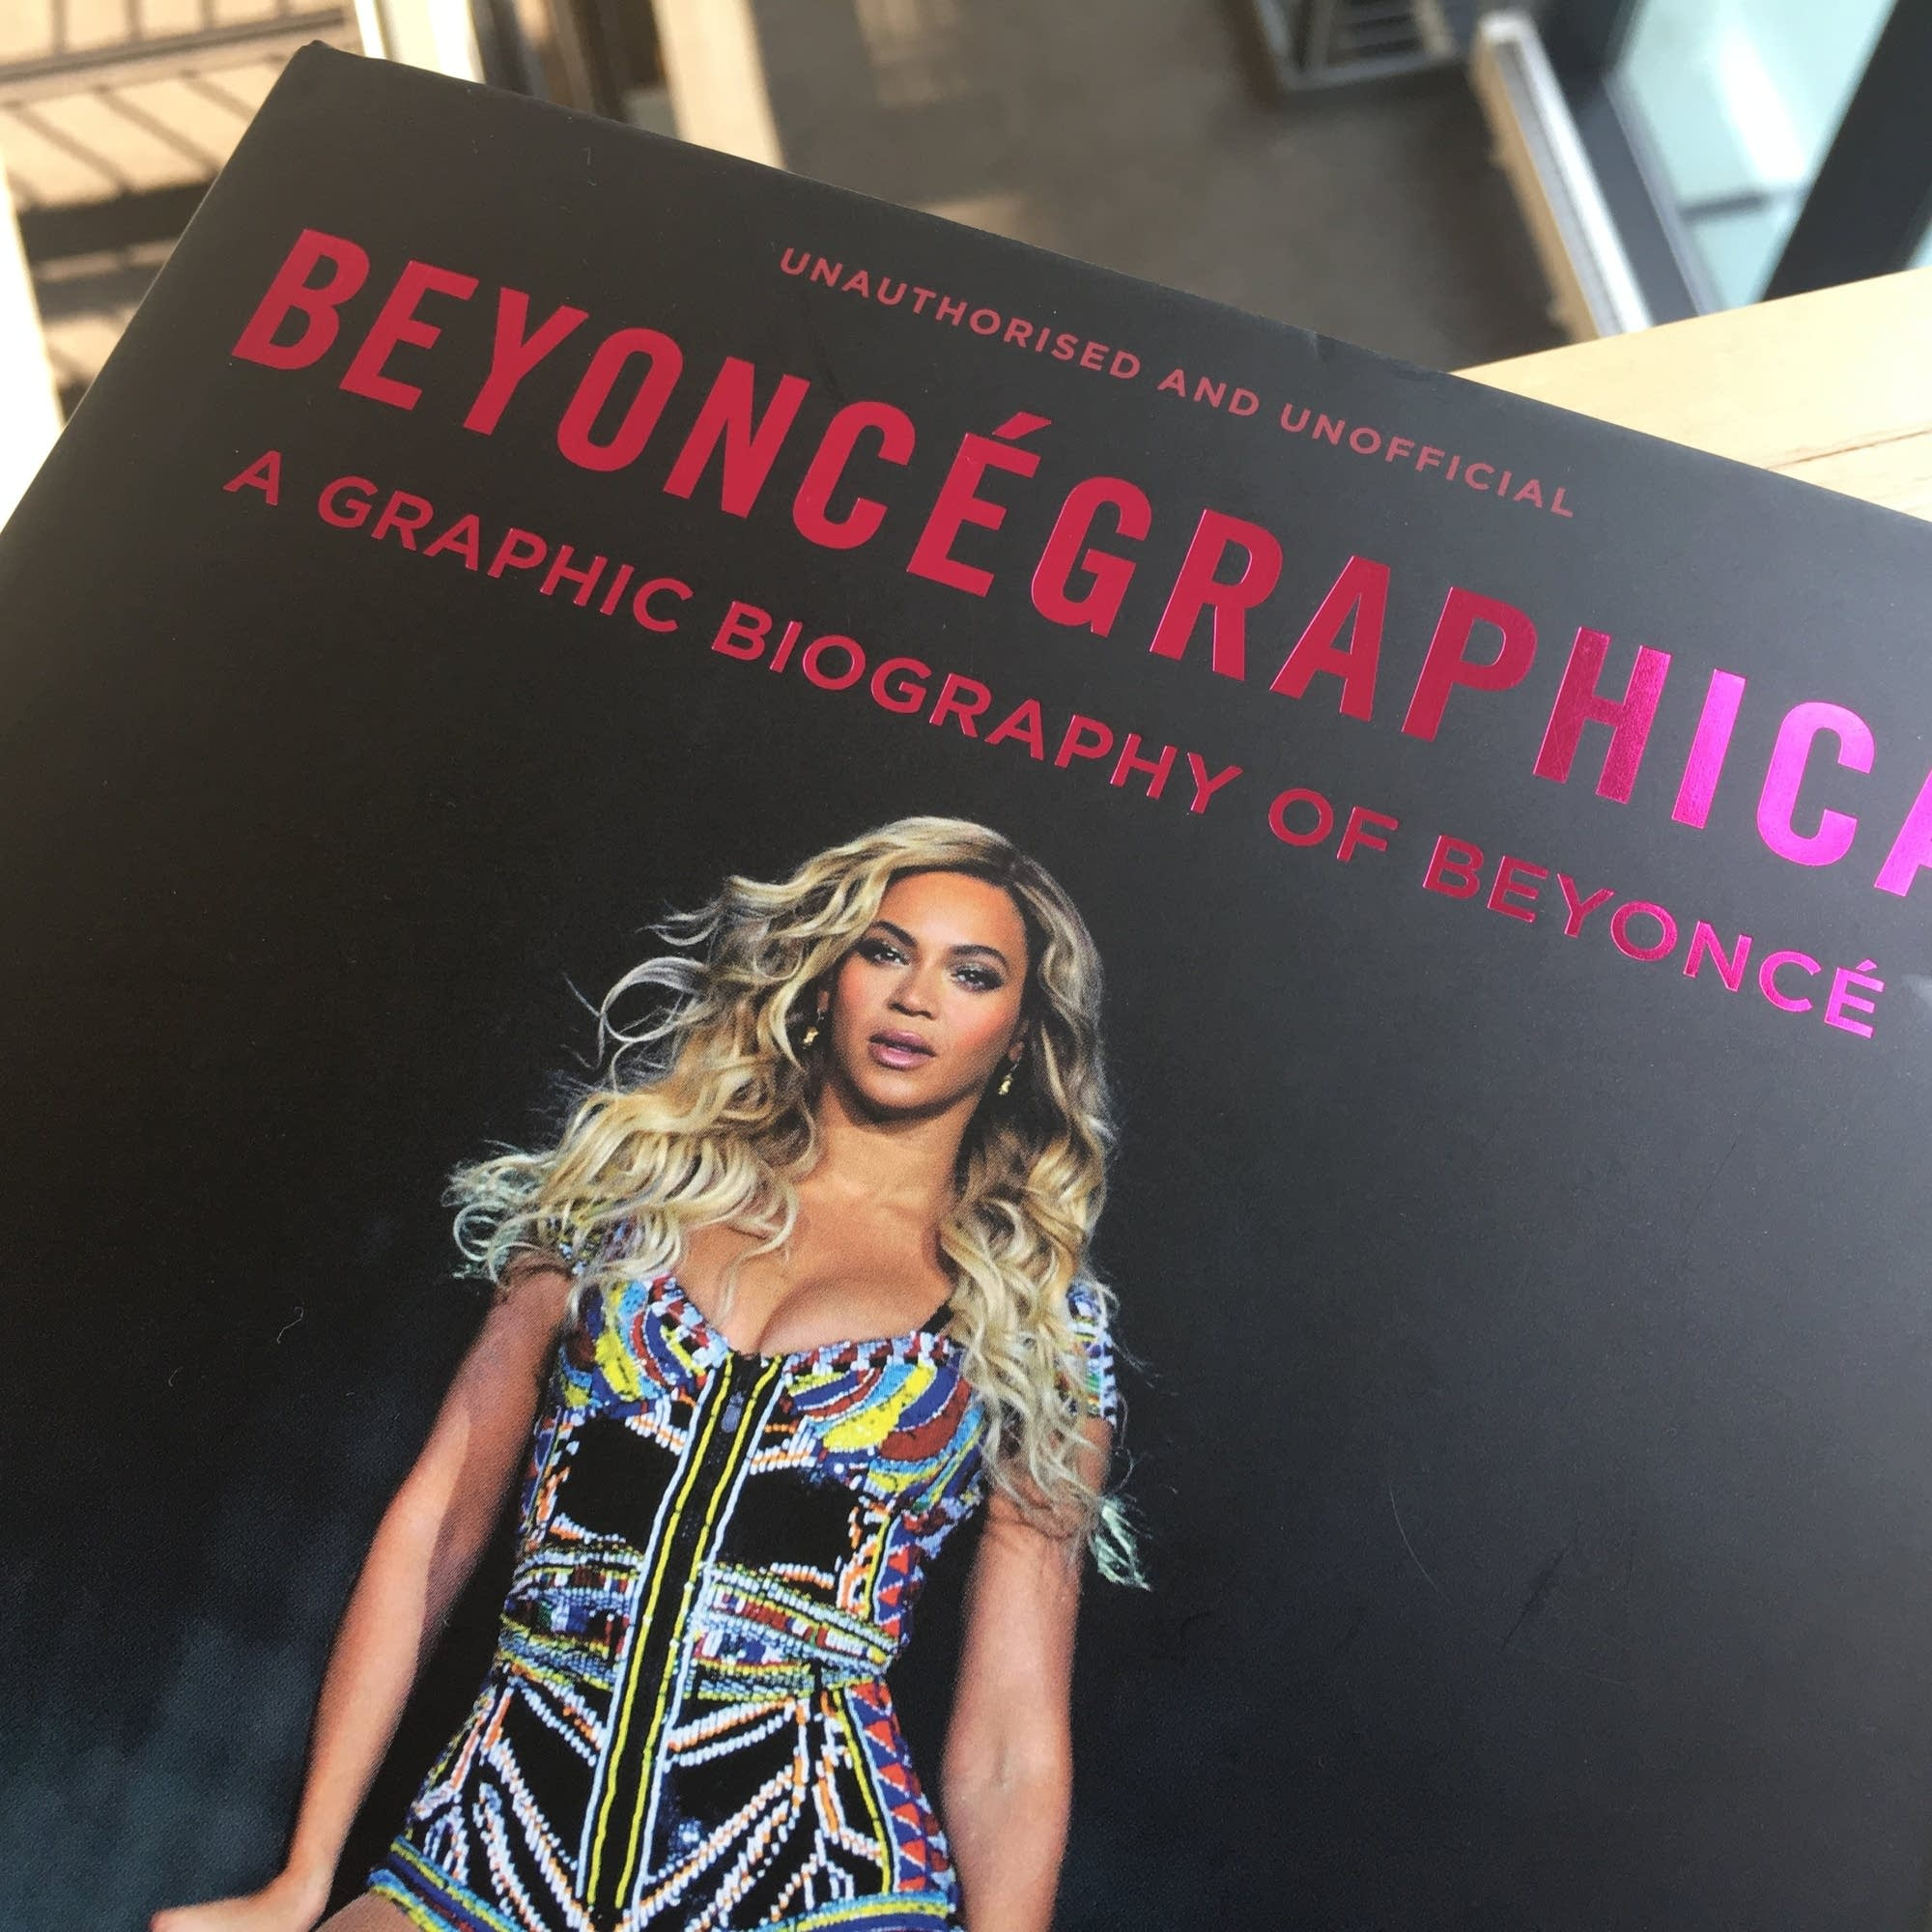 The cover of 'Beyoncegraphica.'